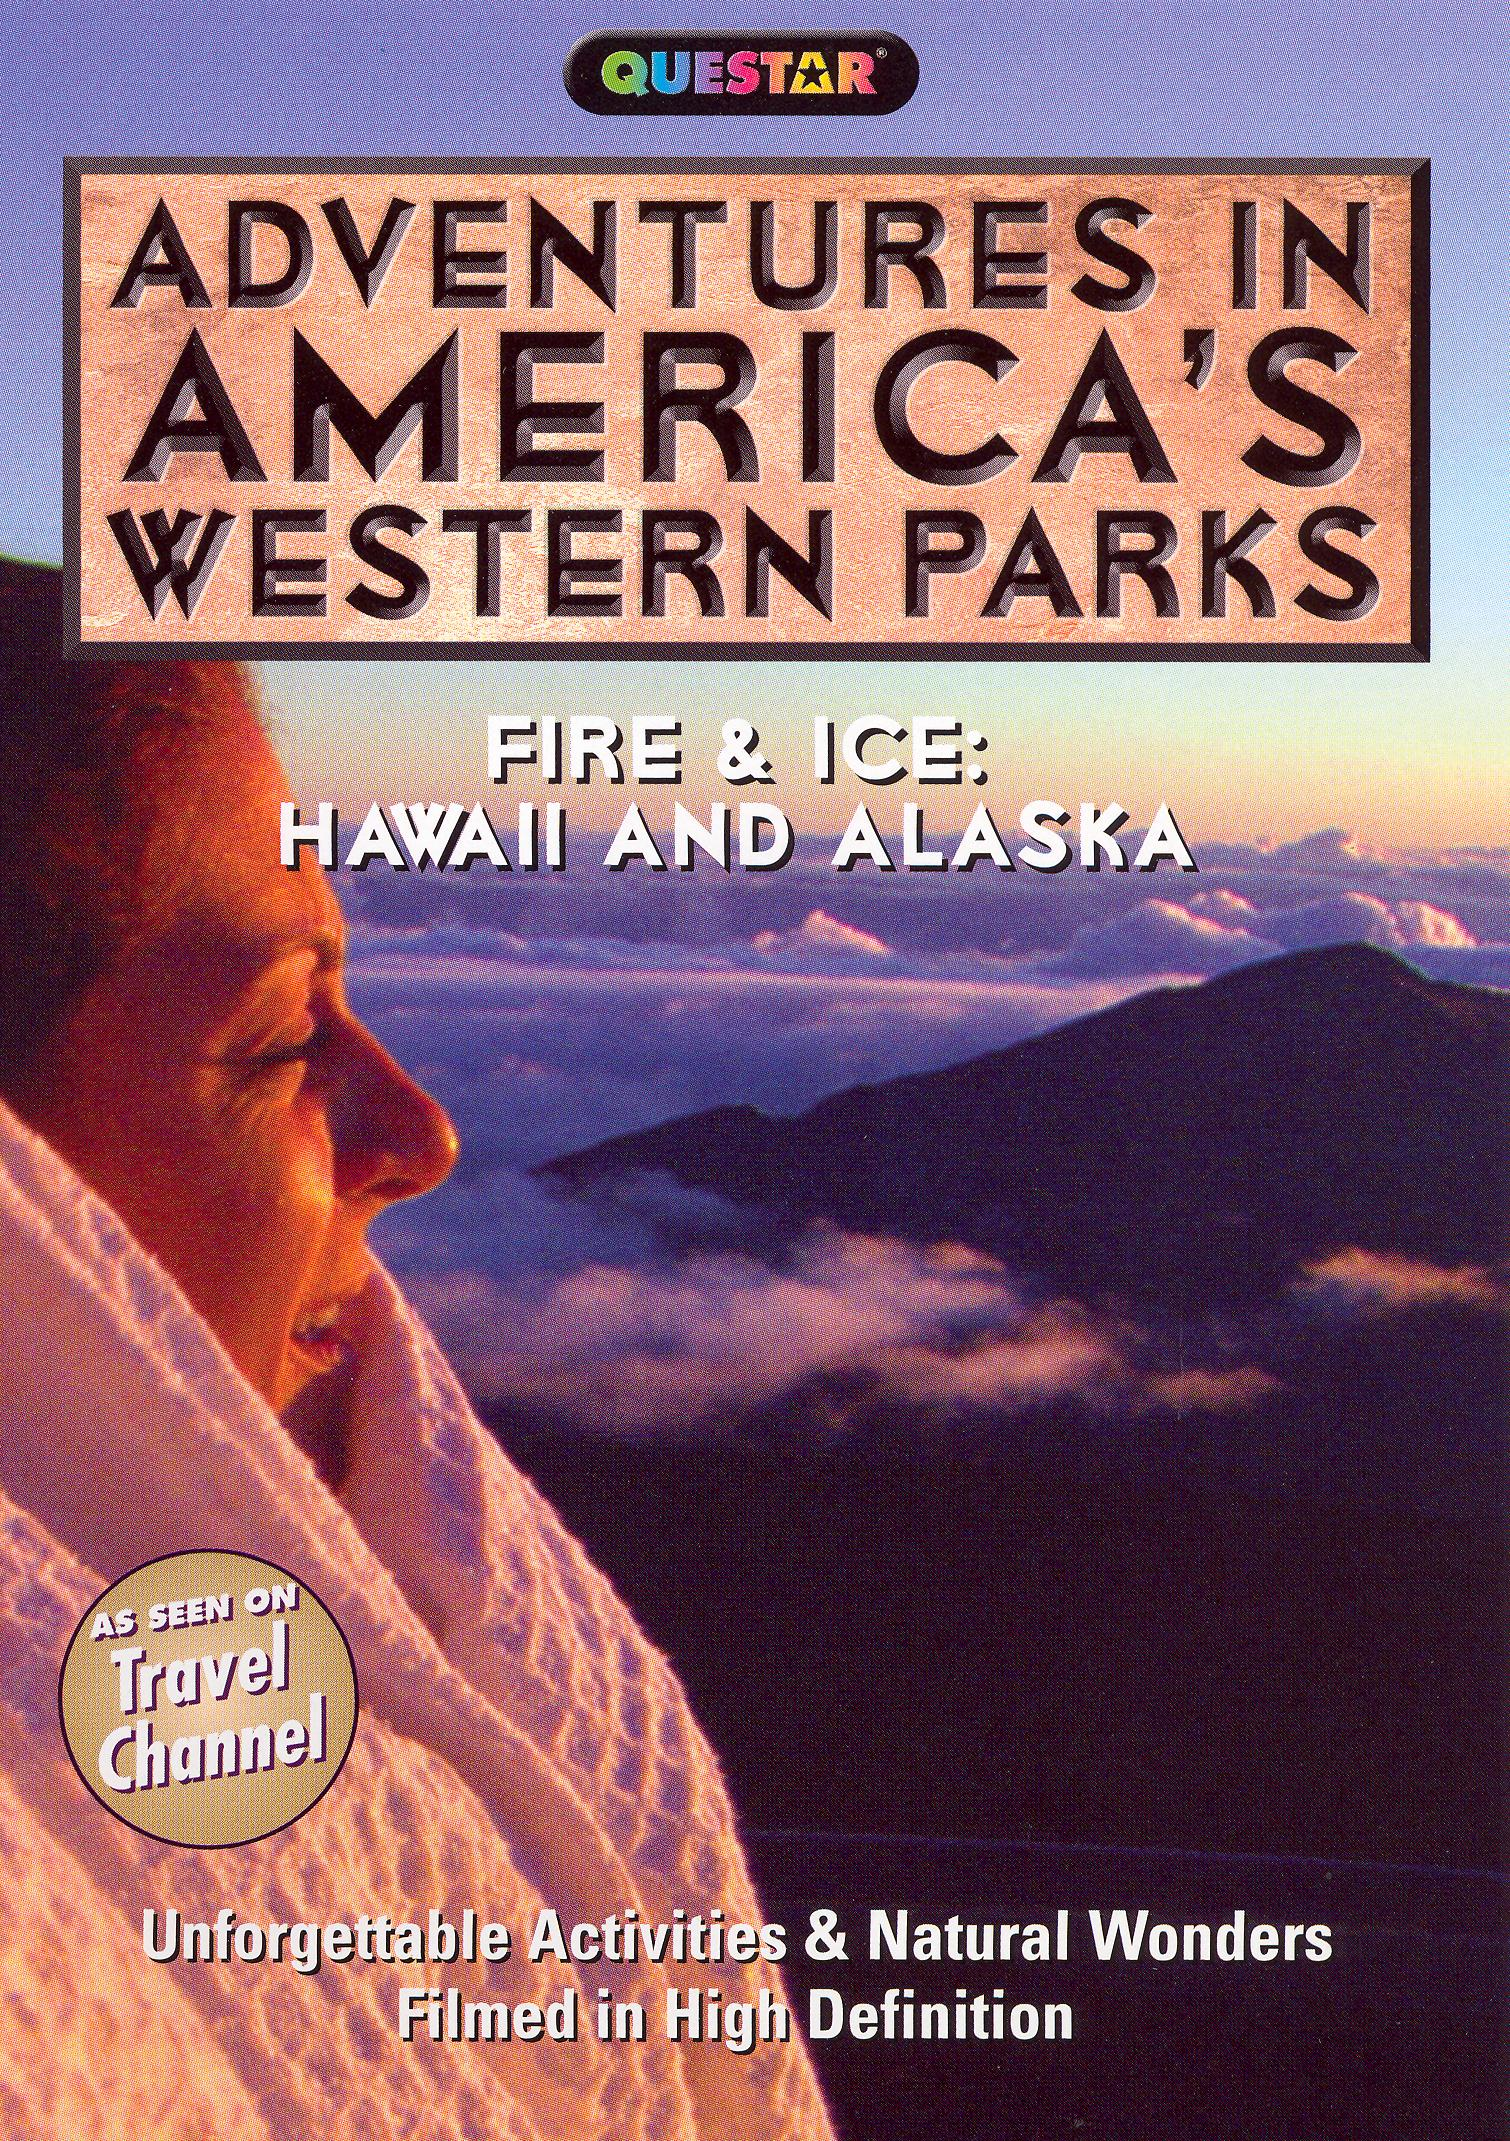 Adventures in America's Western Parks: Fire and Ice - Hawaii and Alaska